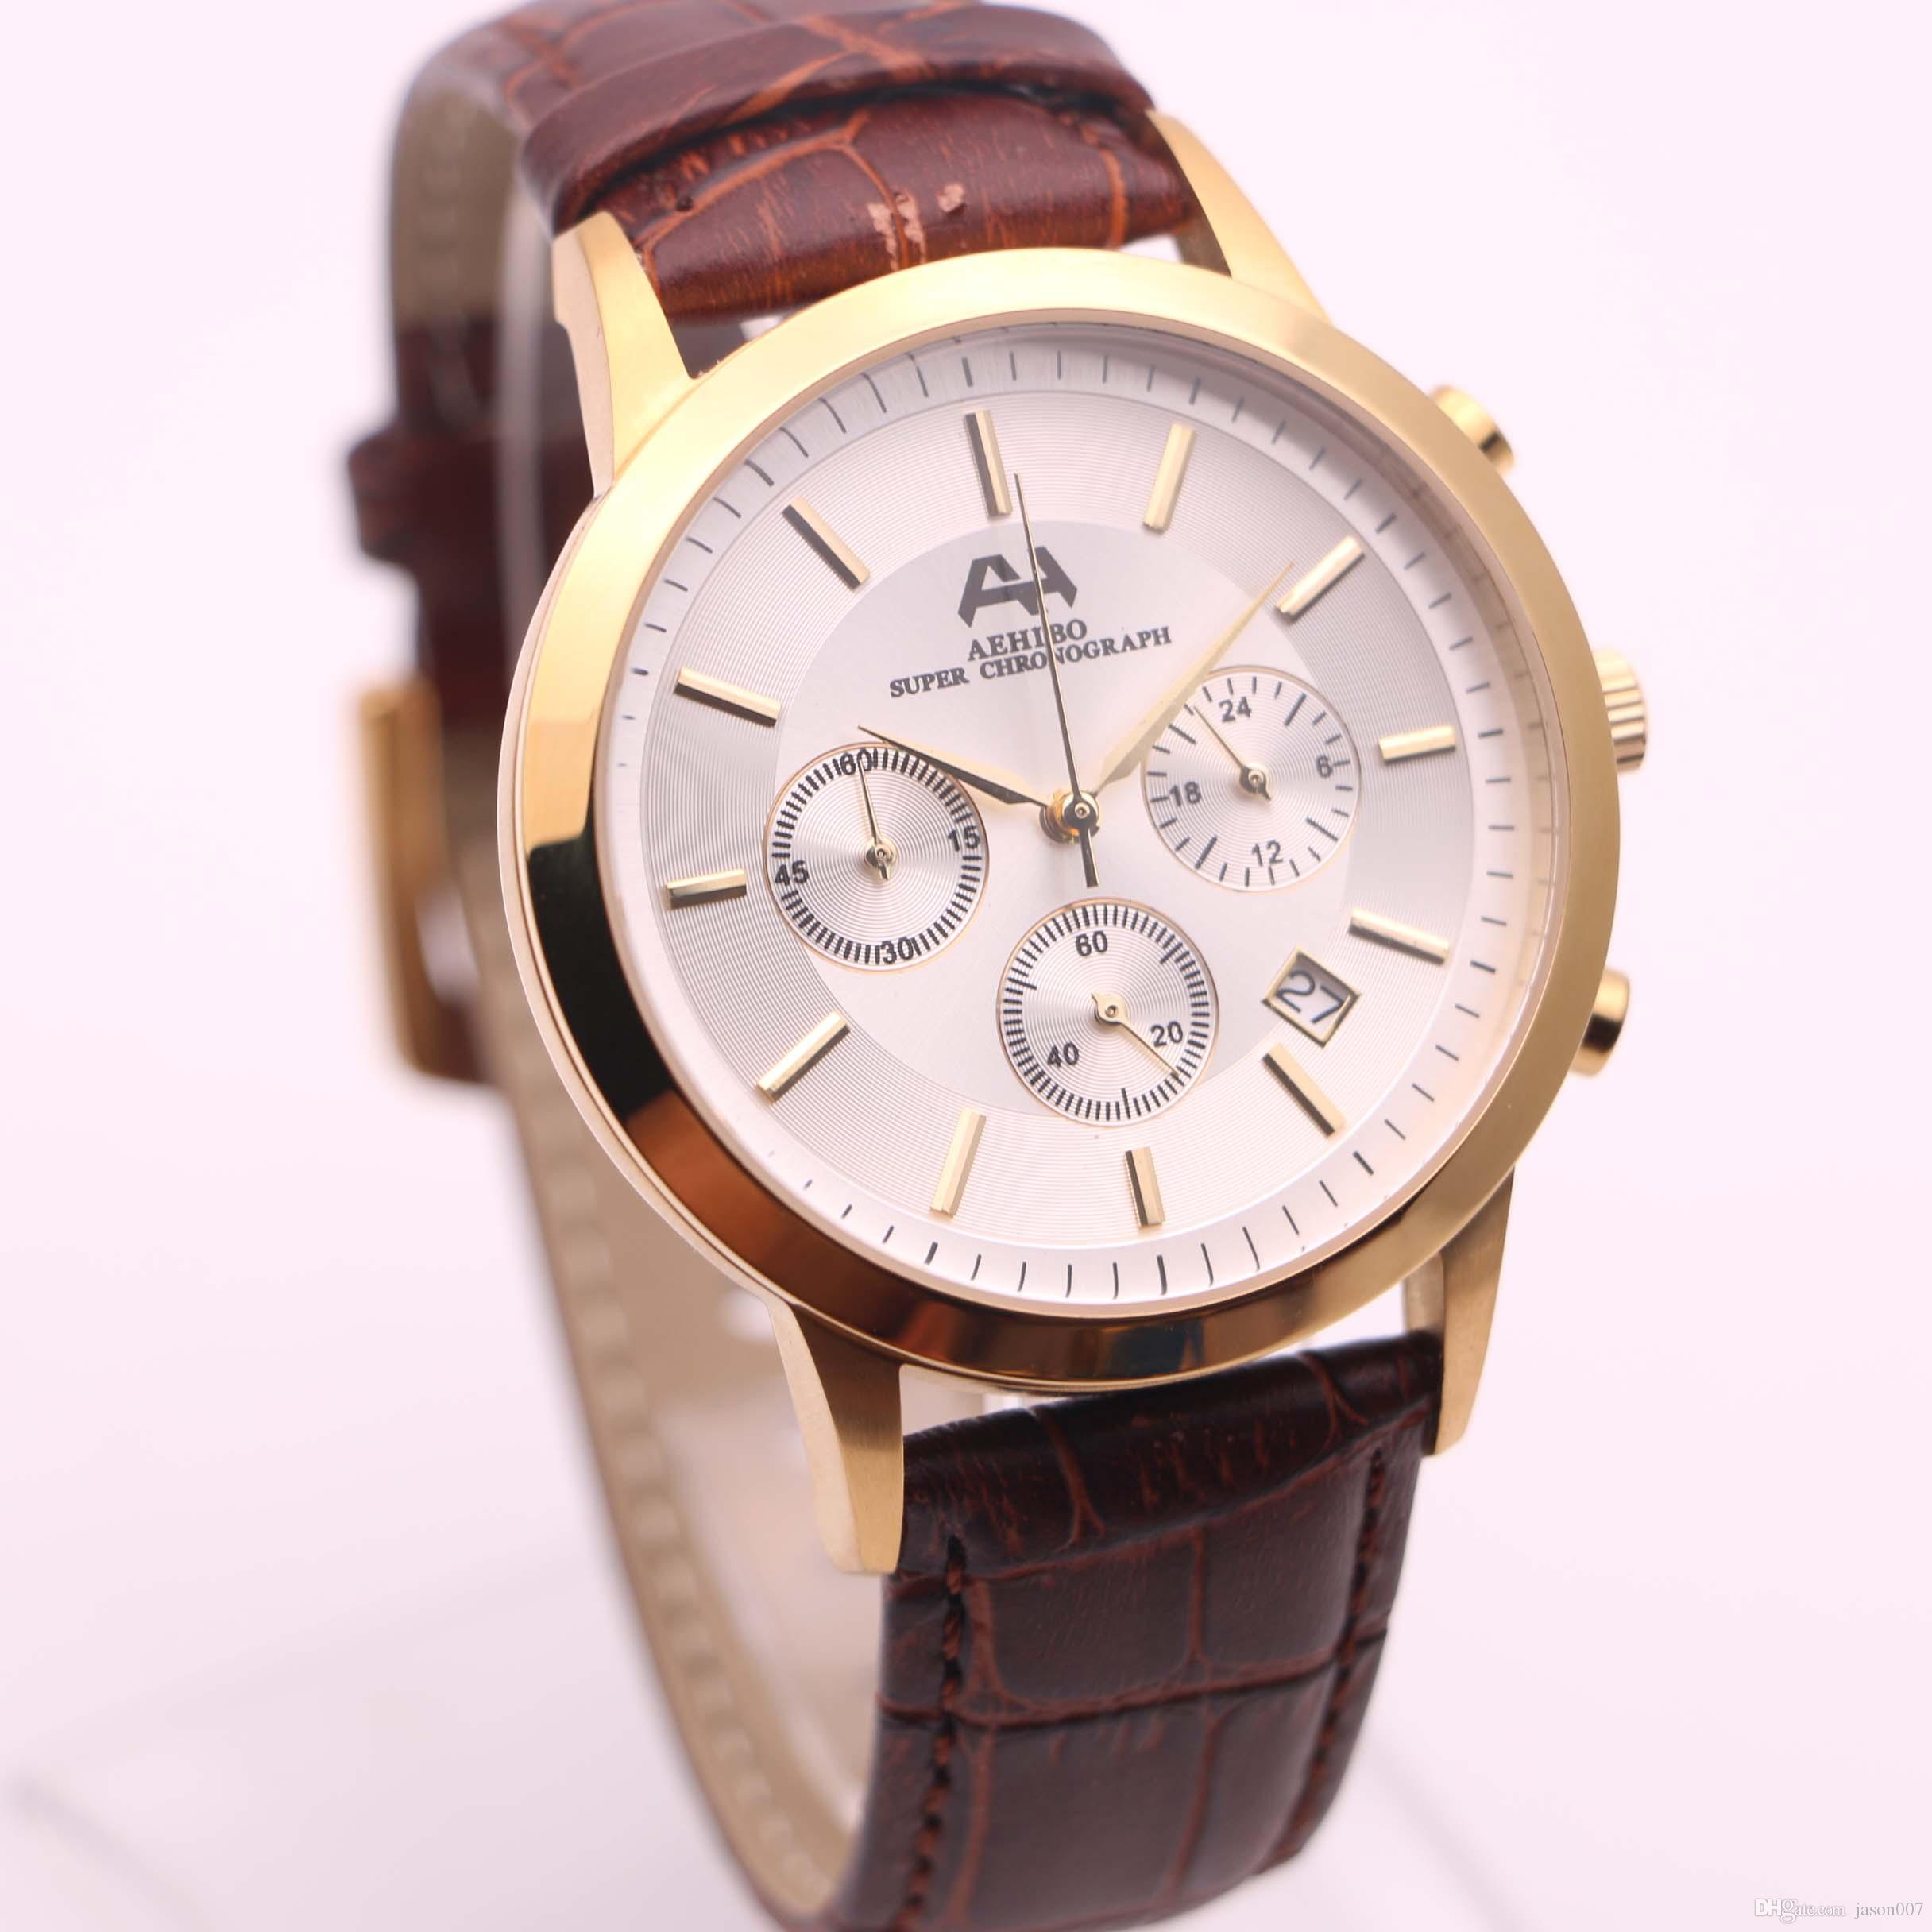 2fe12912711 7 Types Fashion New Brand AEHIBO Watches Men White Face Brown Leather Gold  Watch Quartz VK Super Stainless Chronograph Watch Men S Watches Online  Shopping ...